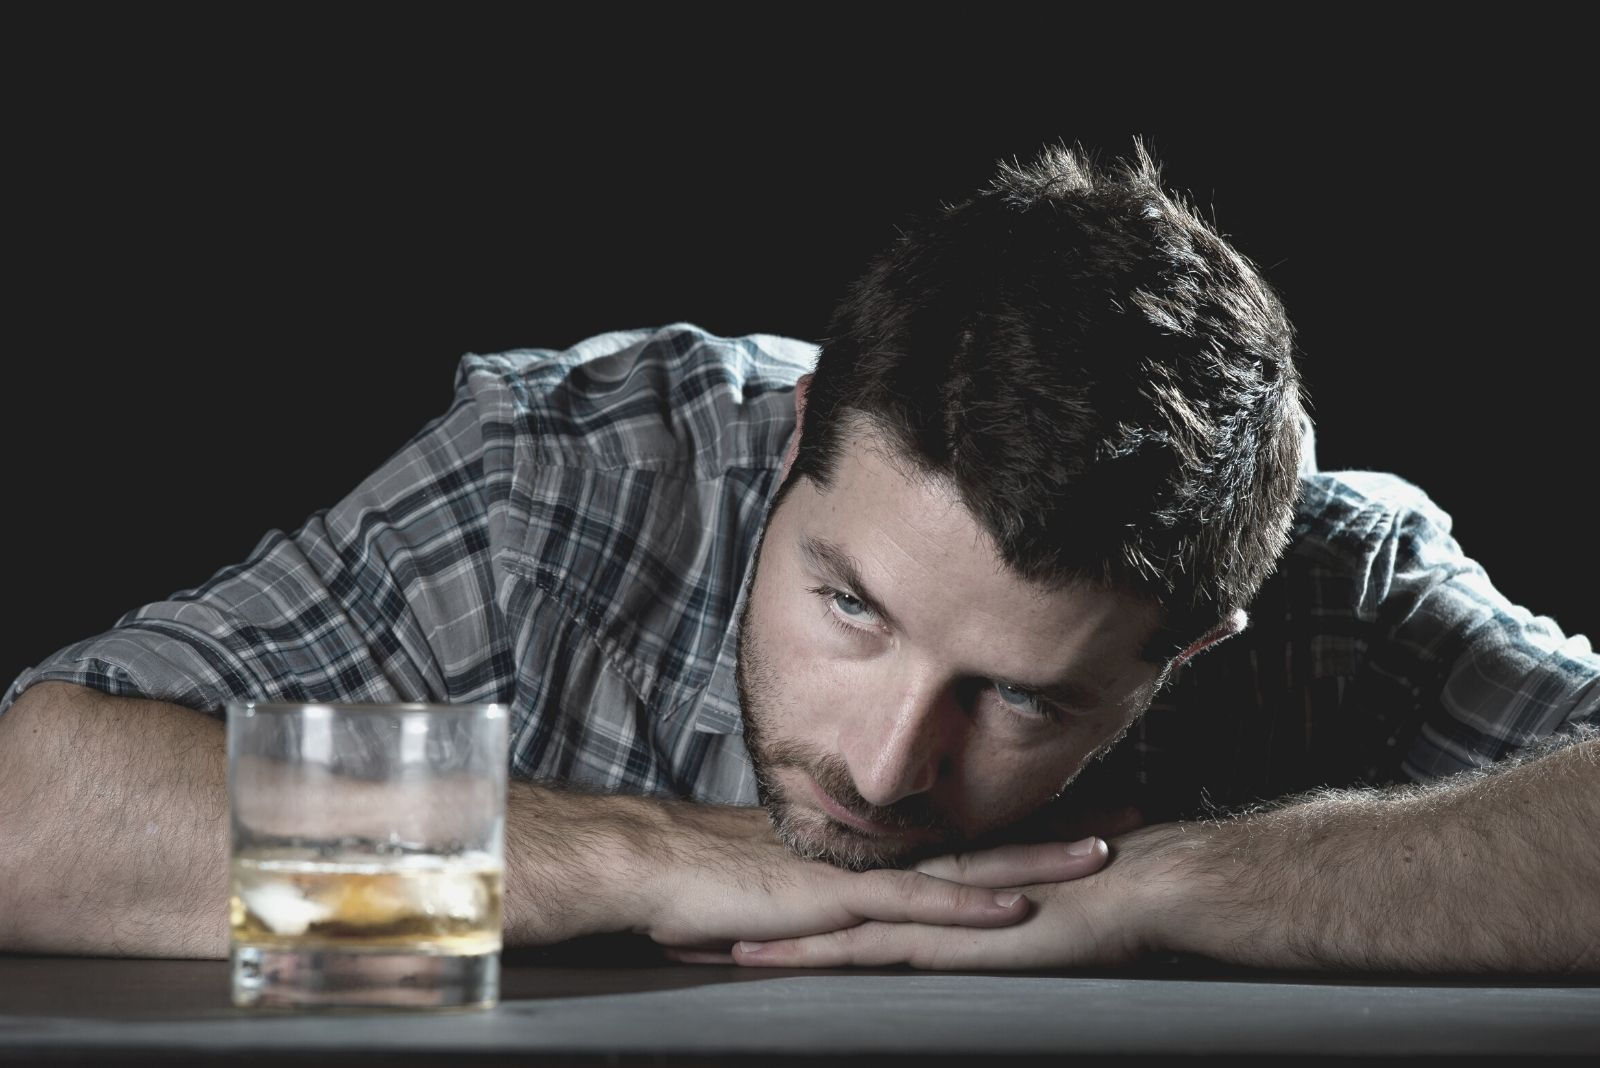 10 Warning Signs You're Dating An Alcoholic (And What You Can Do)